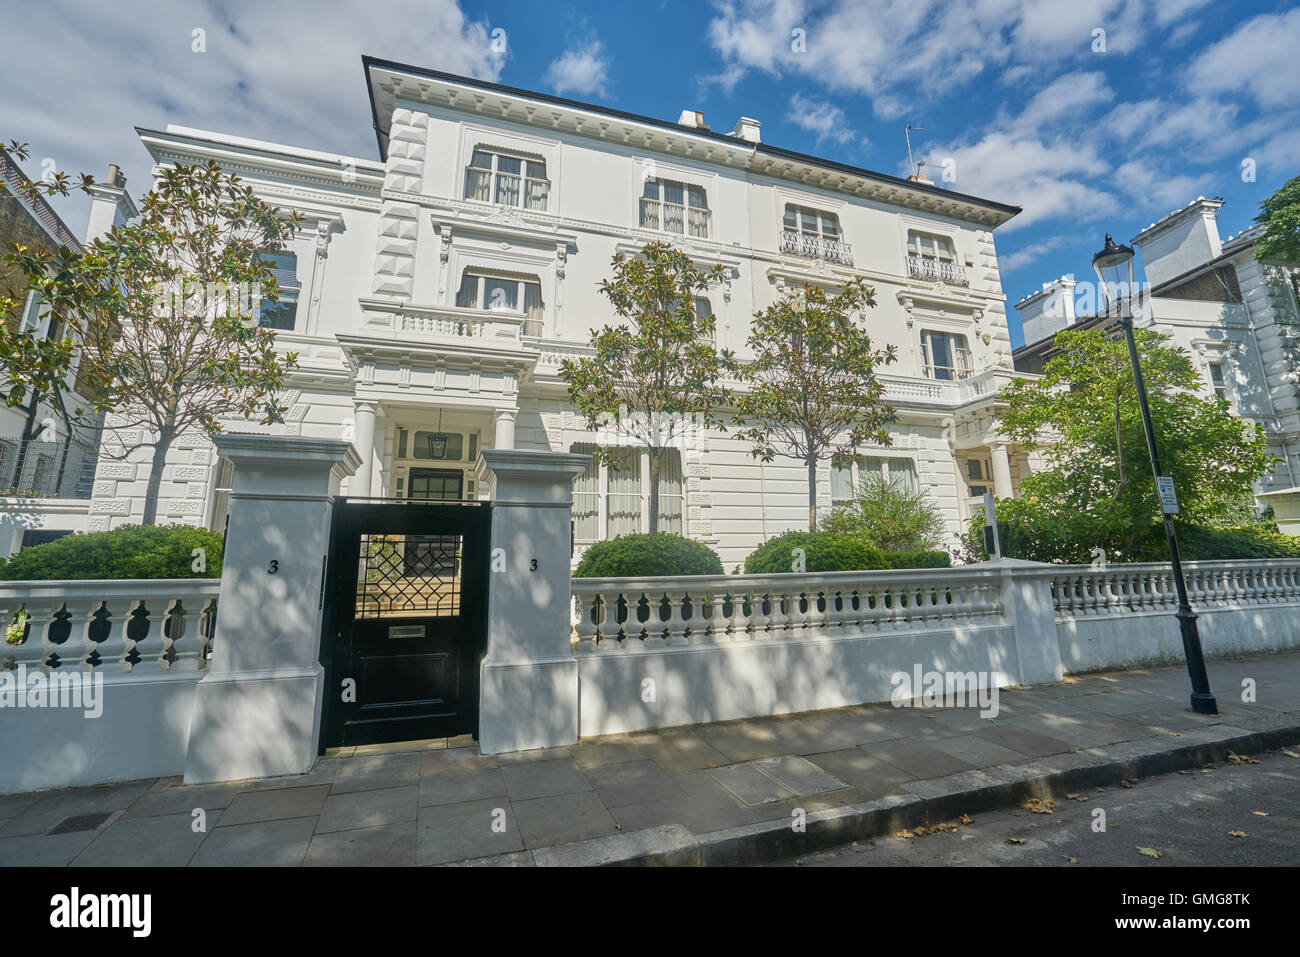 The Boltons, Bolton Gardens, expensive property London - Stock Image